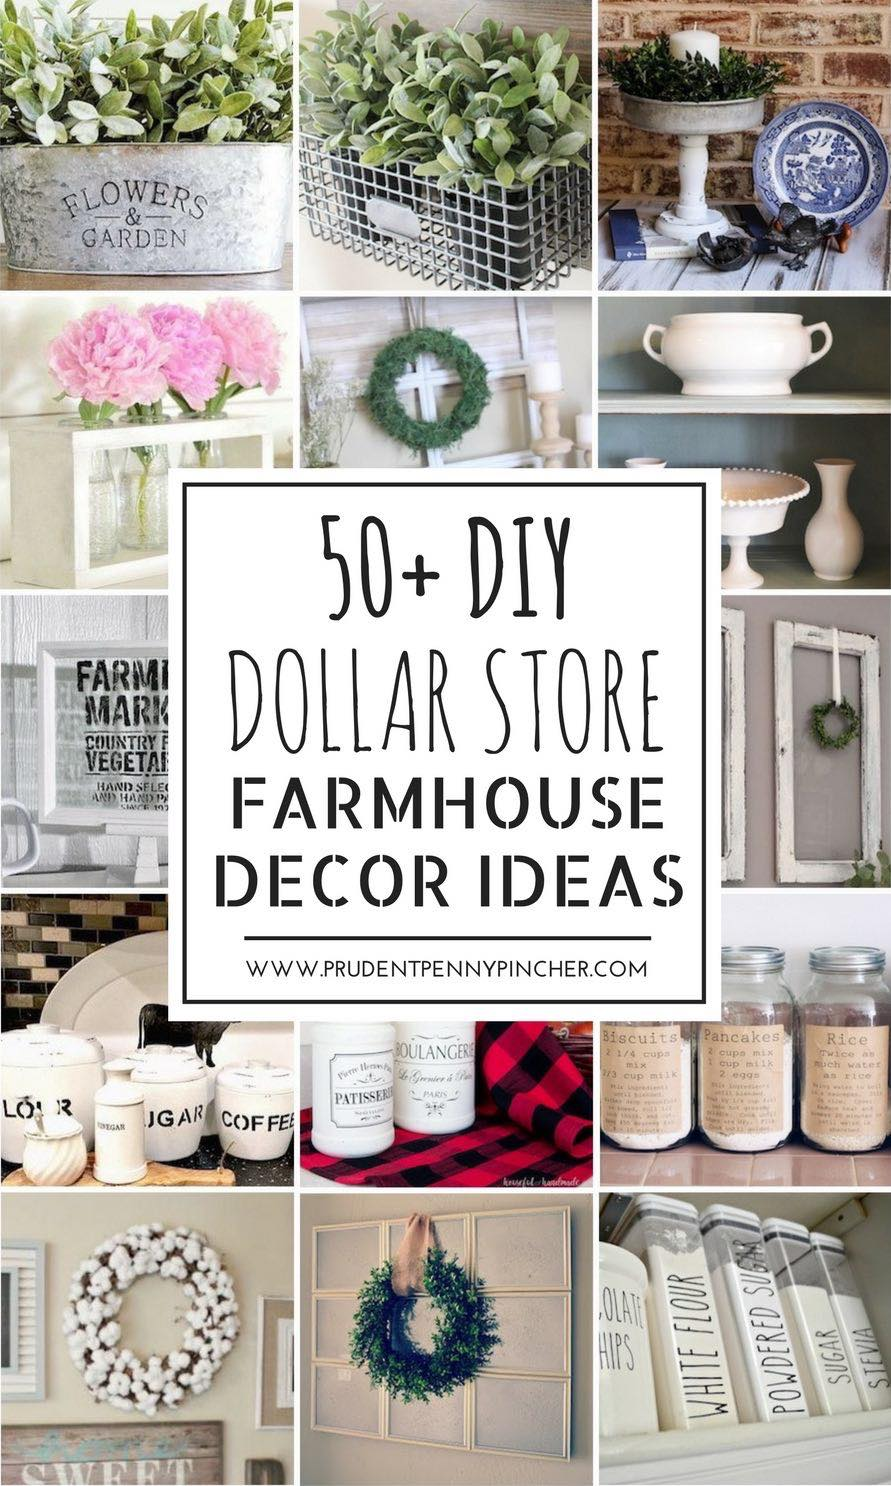 Get The Farmhouse Look For Less With These 50 Diy Decor Ideas So That You Can Give Your Home Some Charm Without Breaking Bank Or